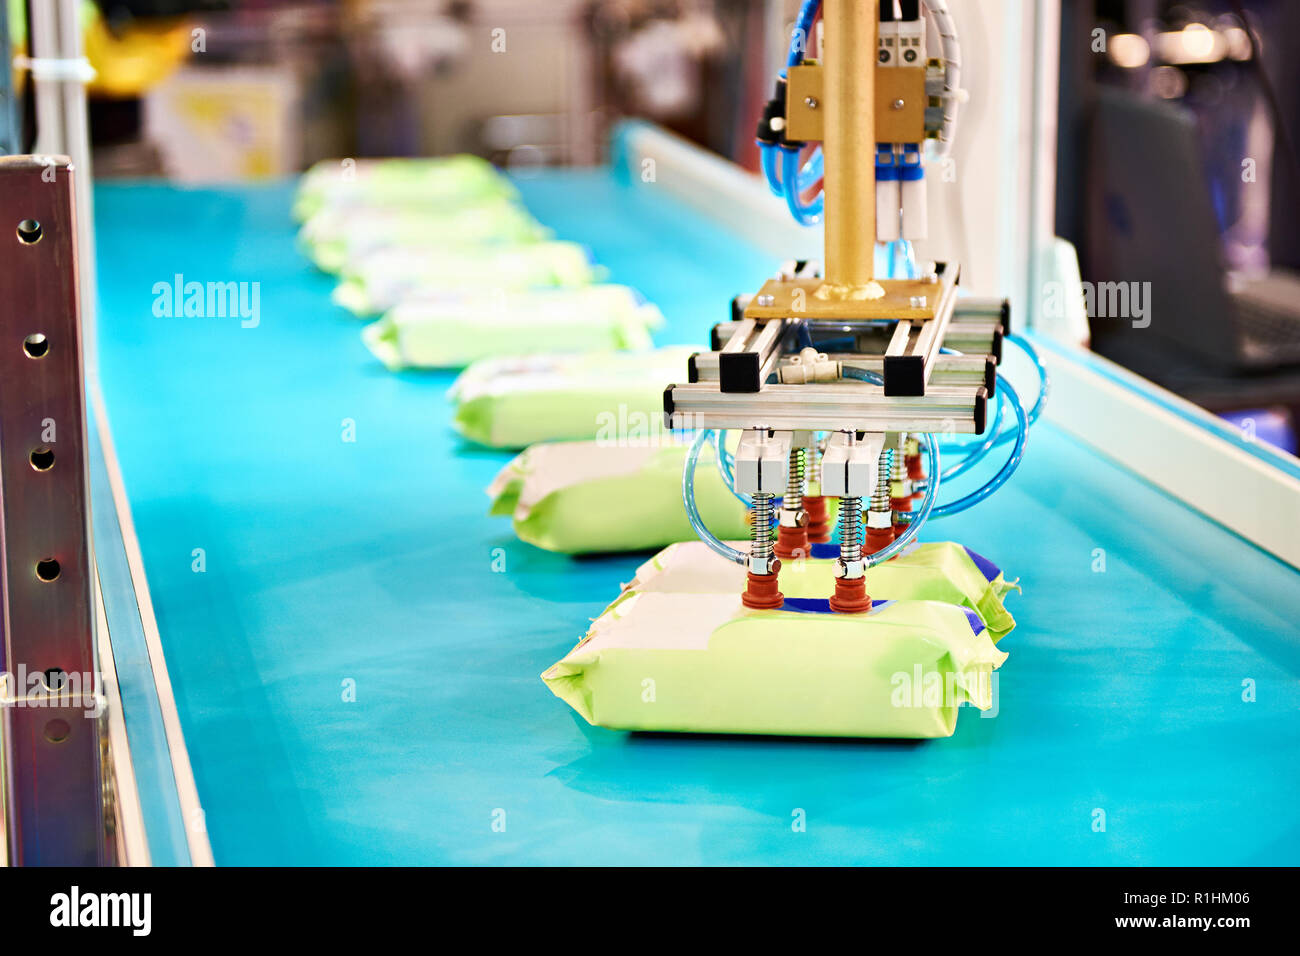 Hand robot manipulator for packaging products on conveyor - Stock Image